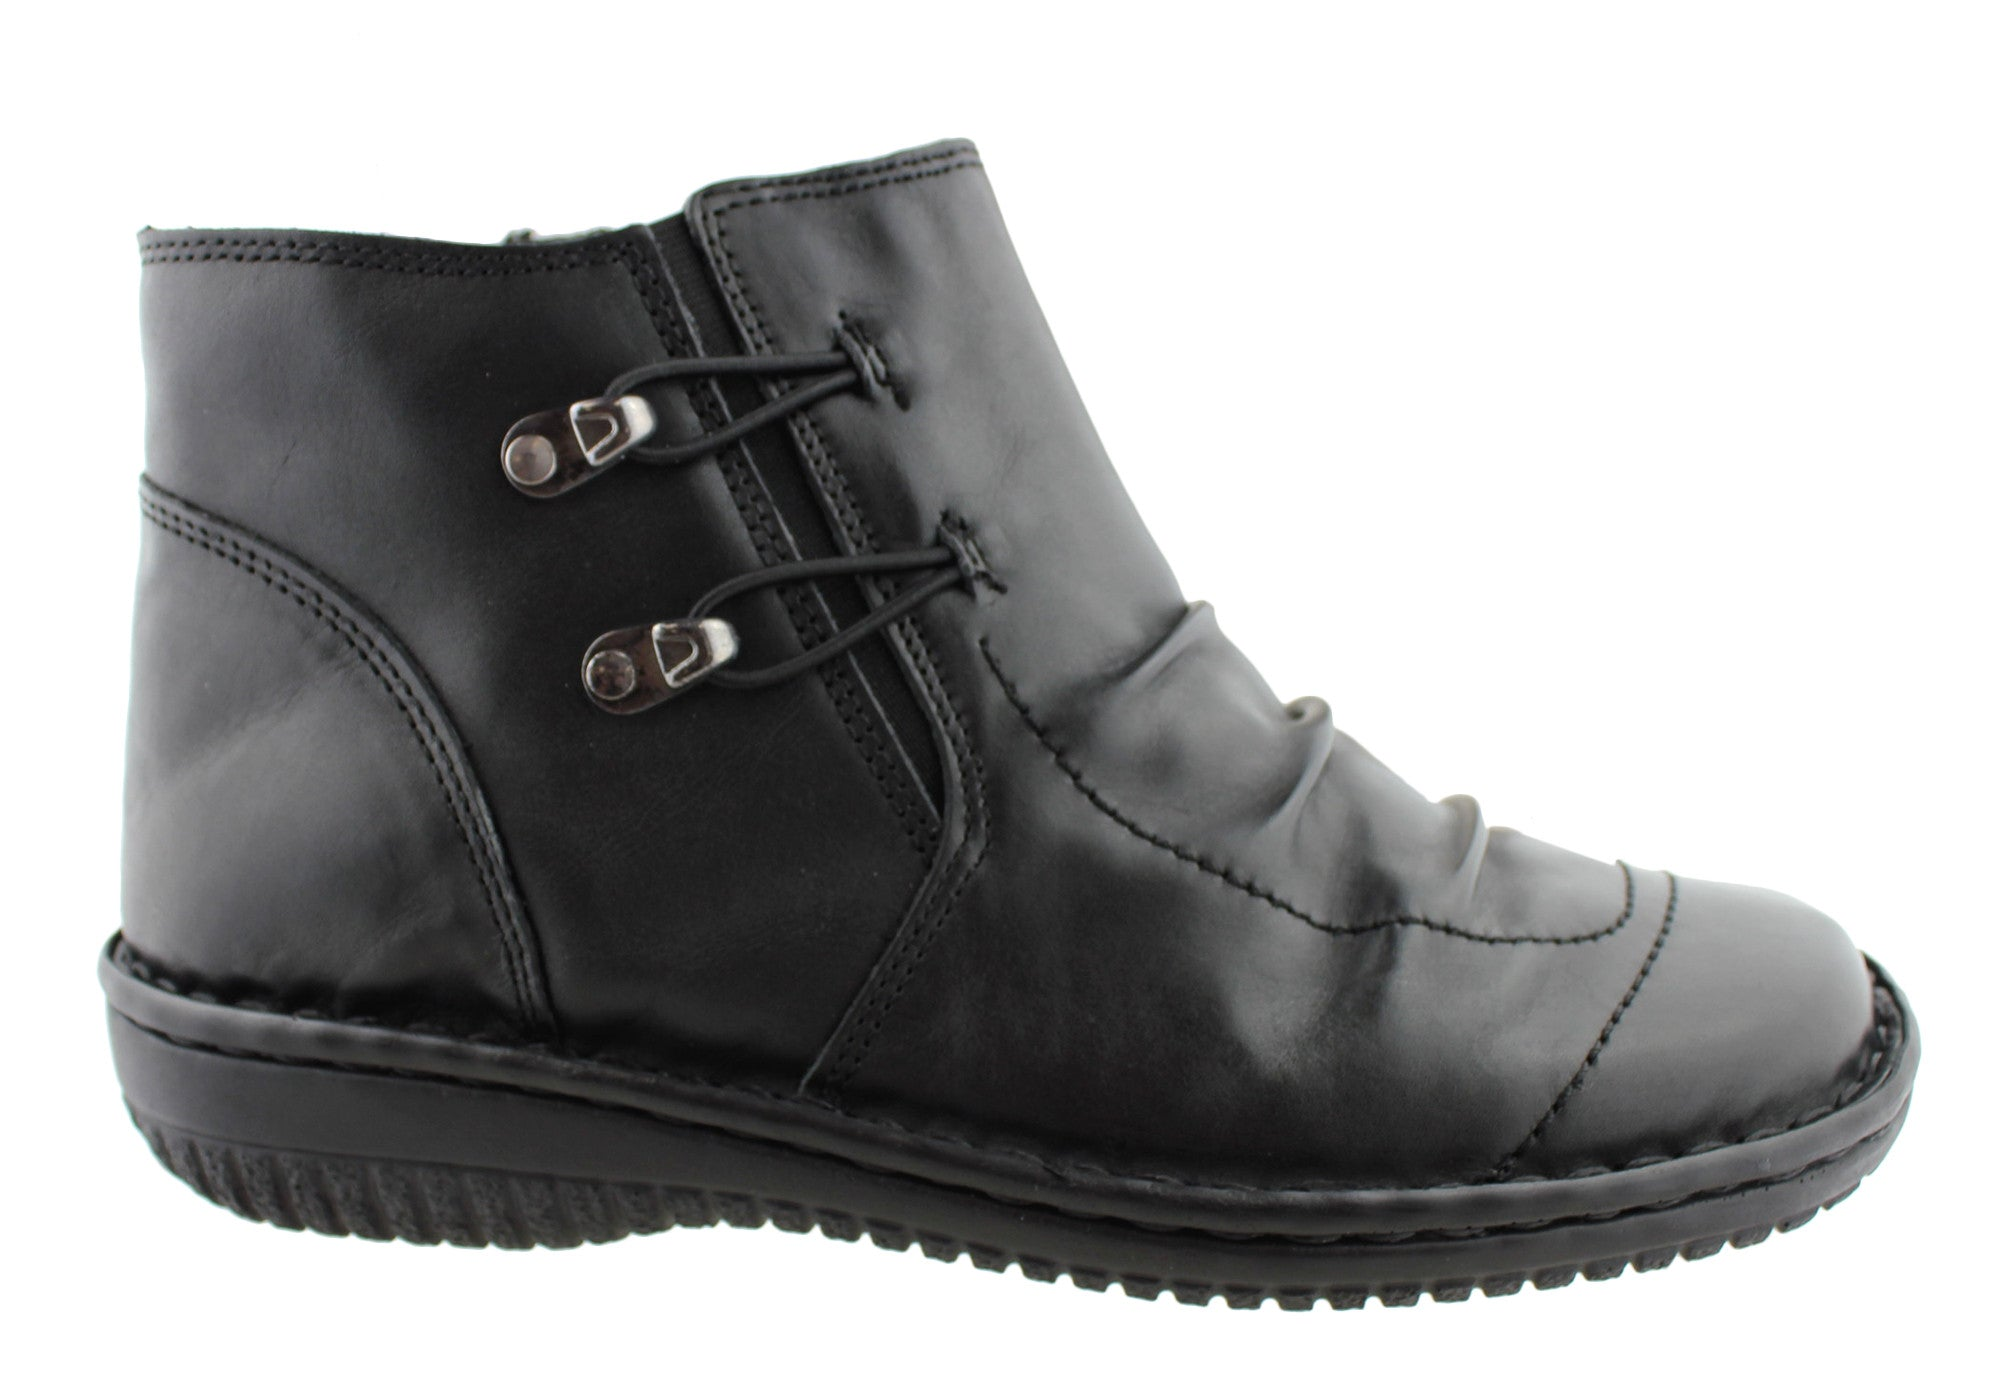 ca09f707ff1 Home Cabello Comfort Womens Leather Ankle Boots. Black ...